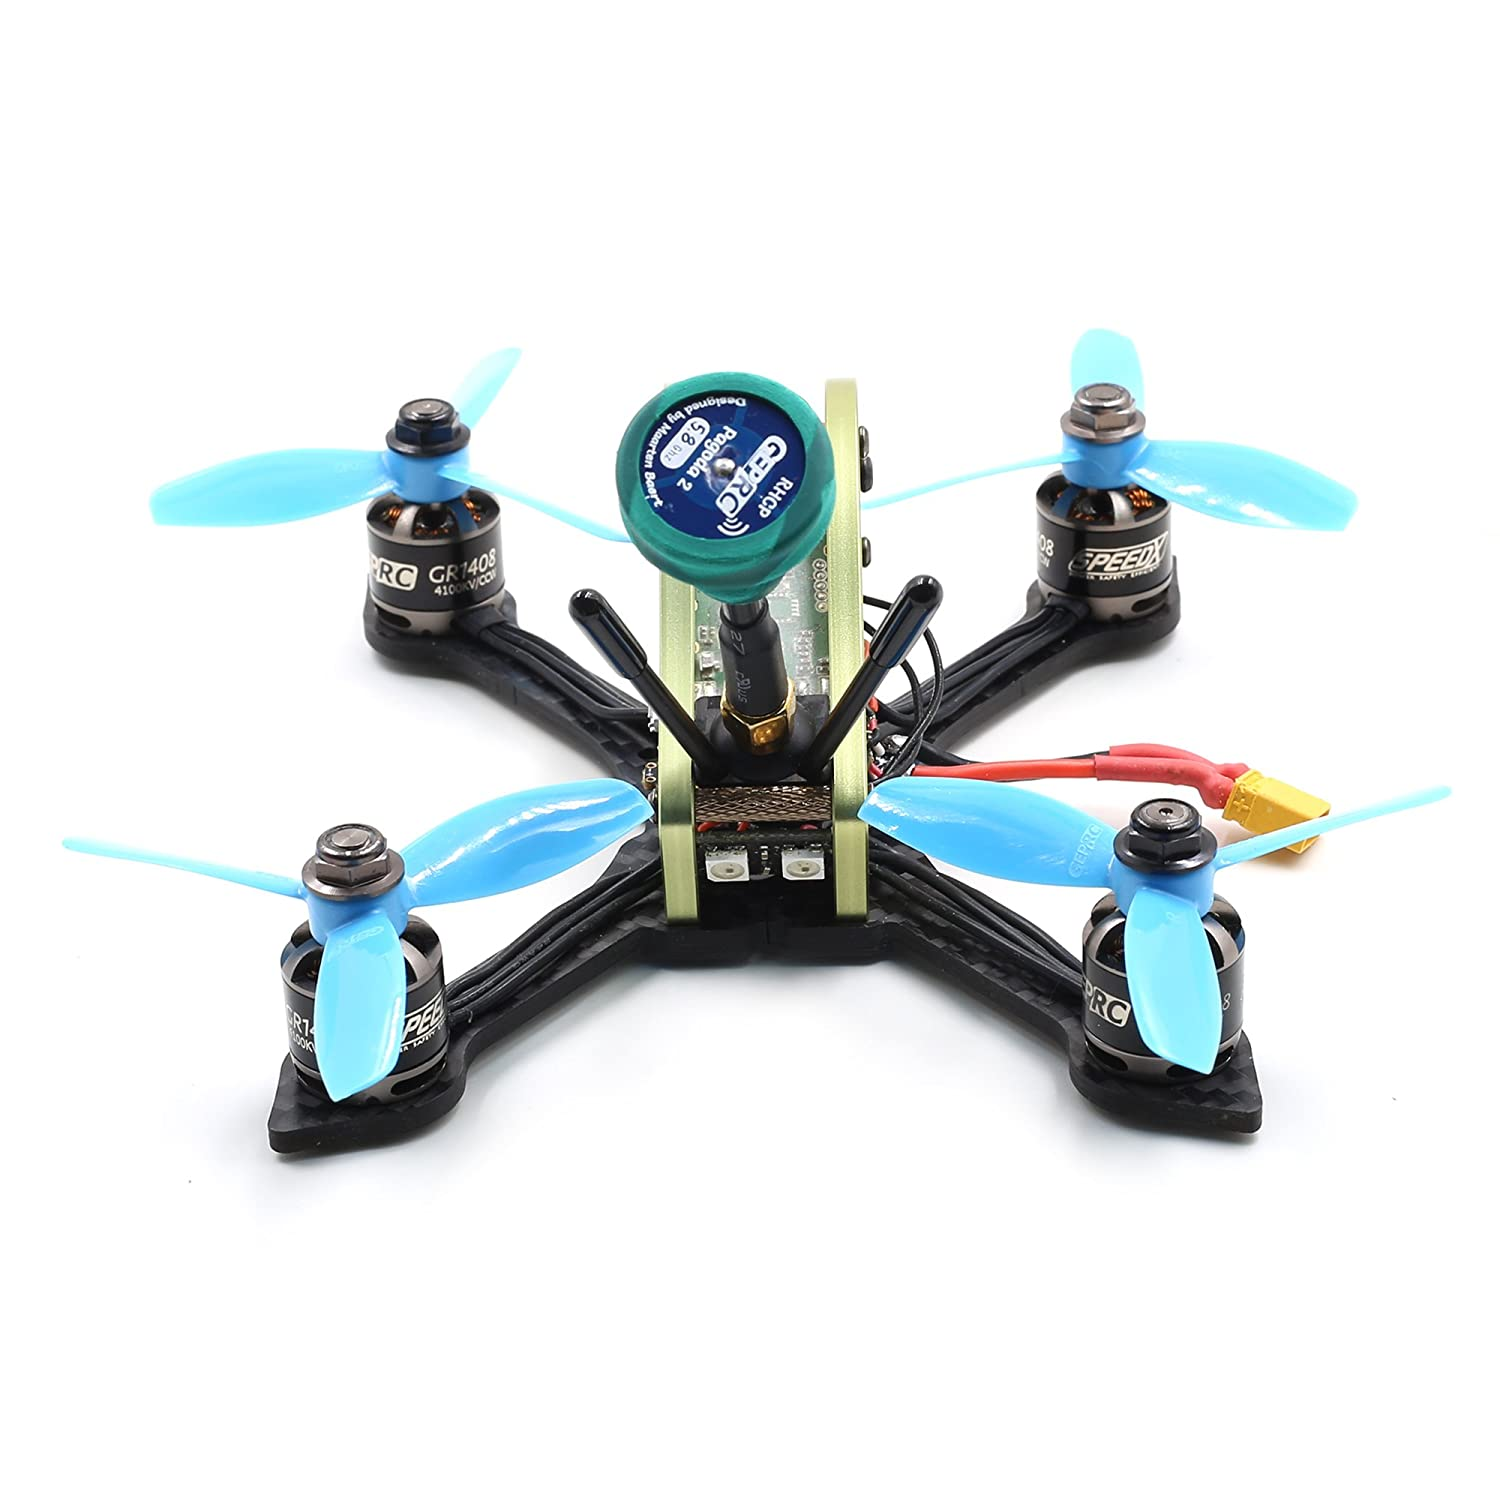 Amazon YUFAY GEPRC Sparrow Micro FPV Quadcopter Quad Race Drone 3inch Frame GEPRC MX3 Green for FPV Racing Drone Kit Toys & Games